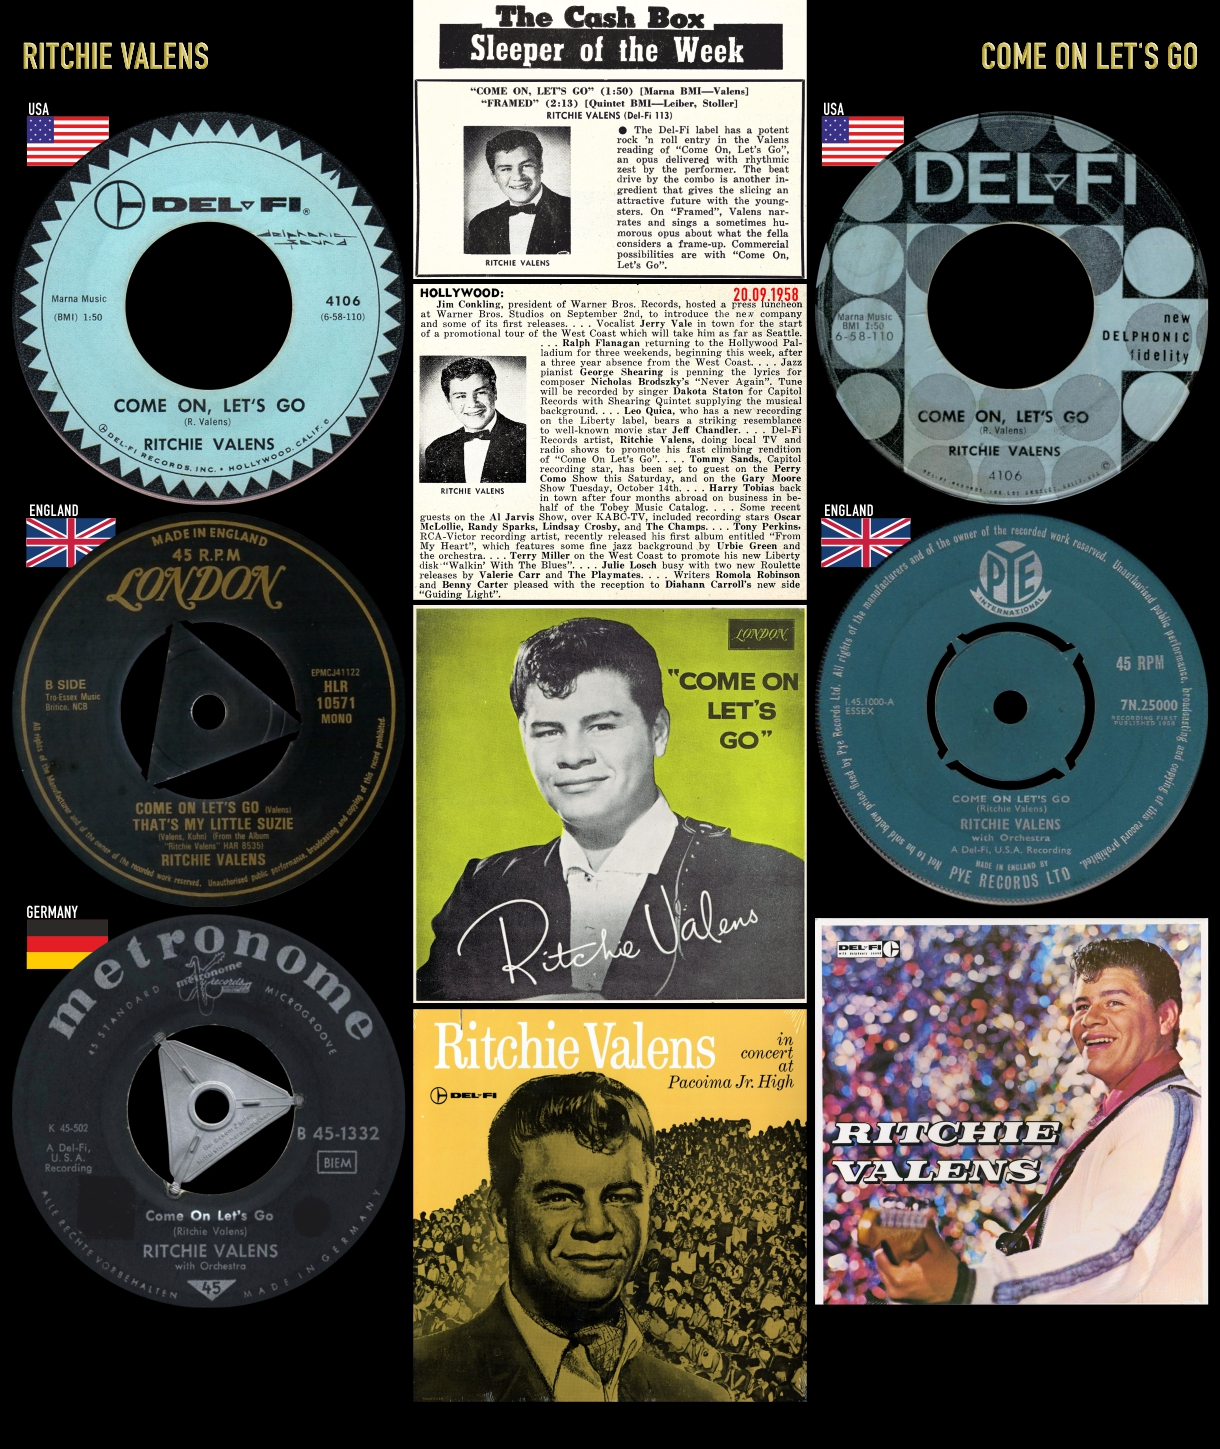 580920_Ritchie Valens_Come On Let's Go